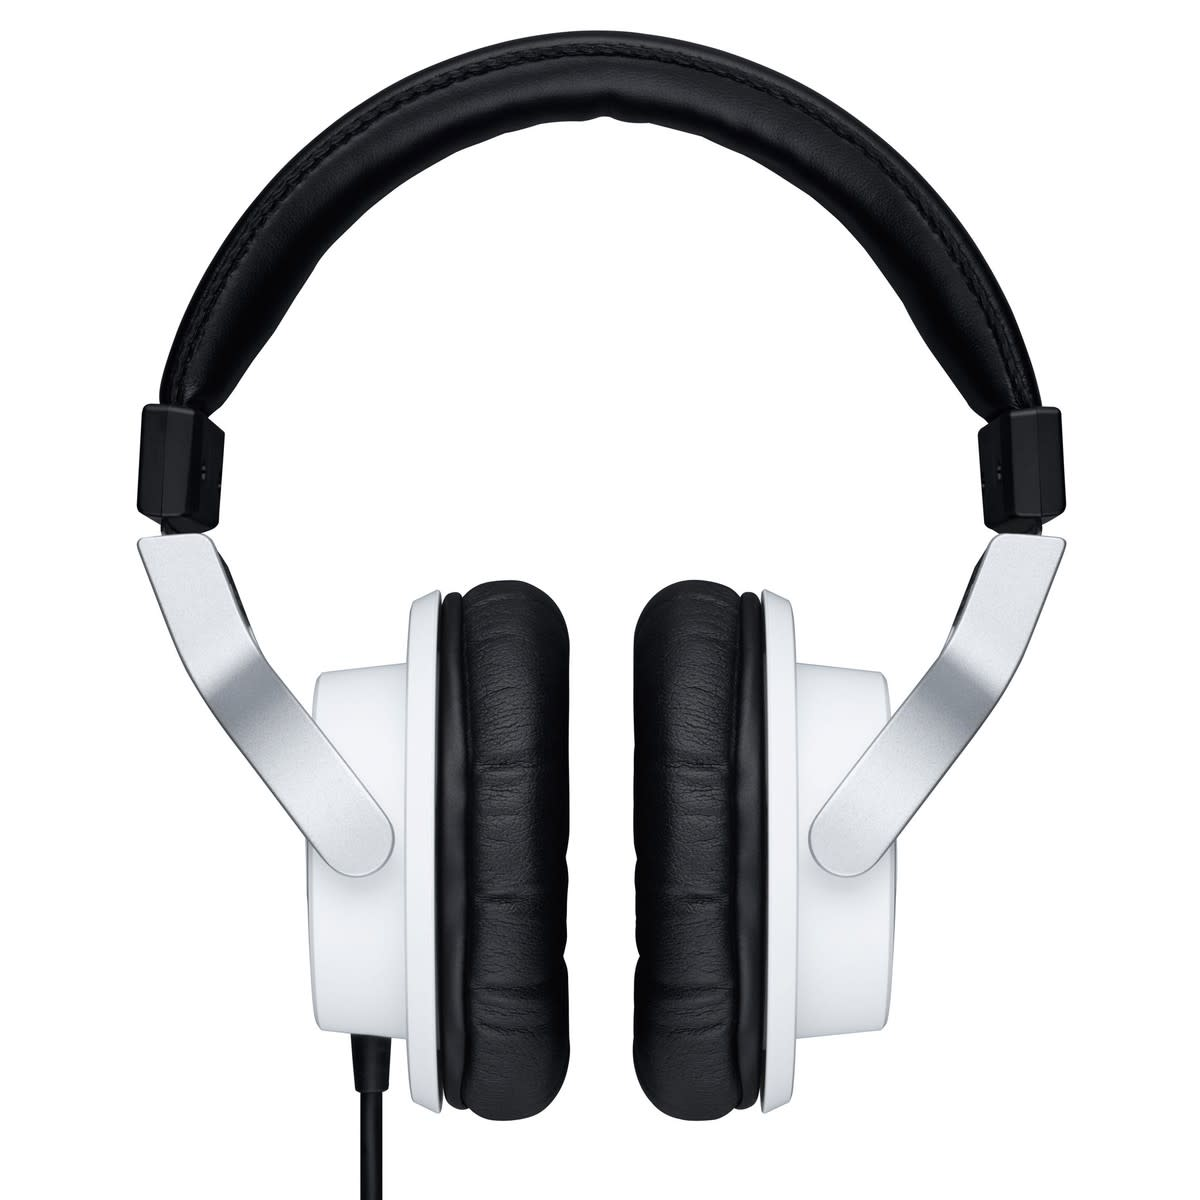 Yamaha headphone